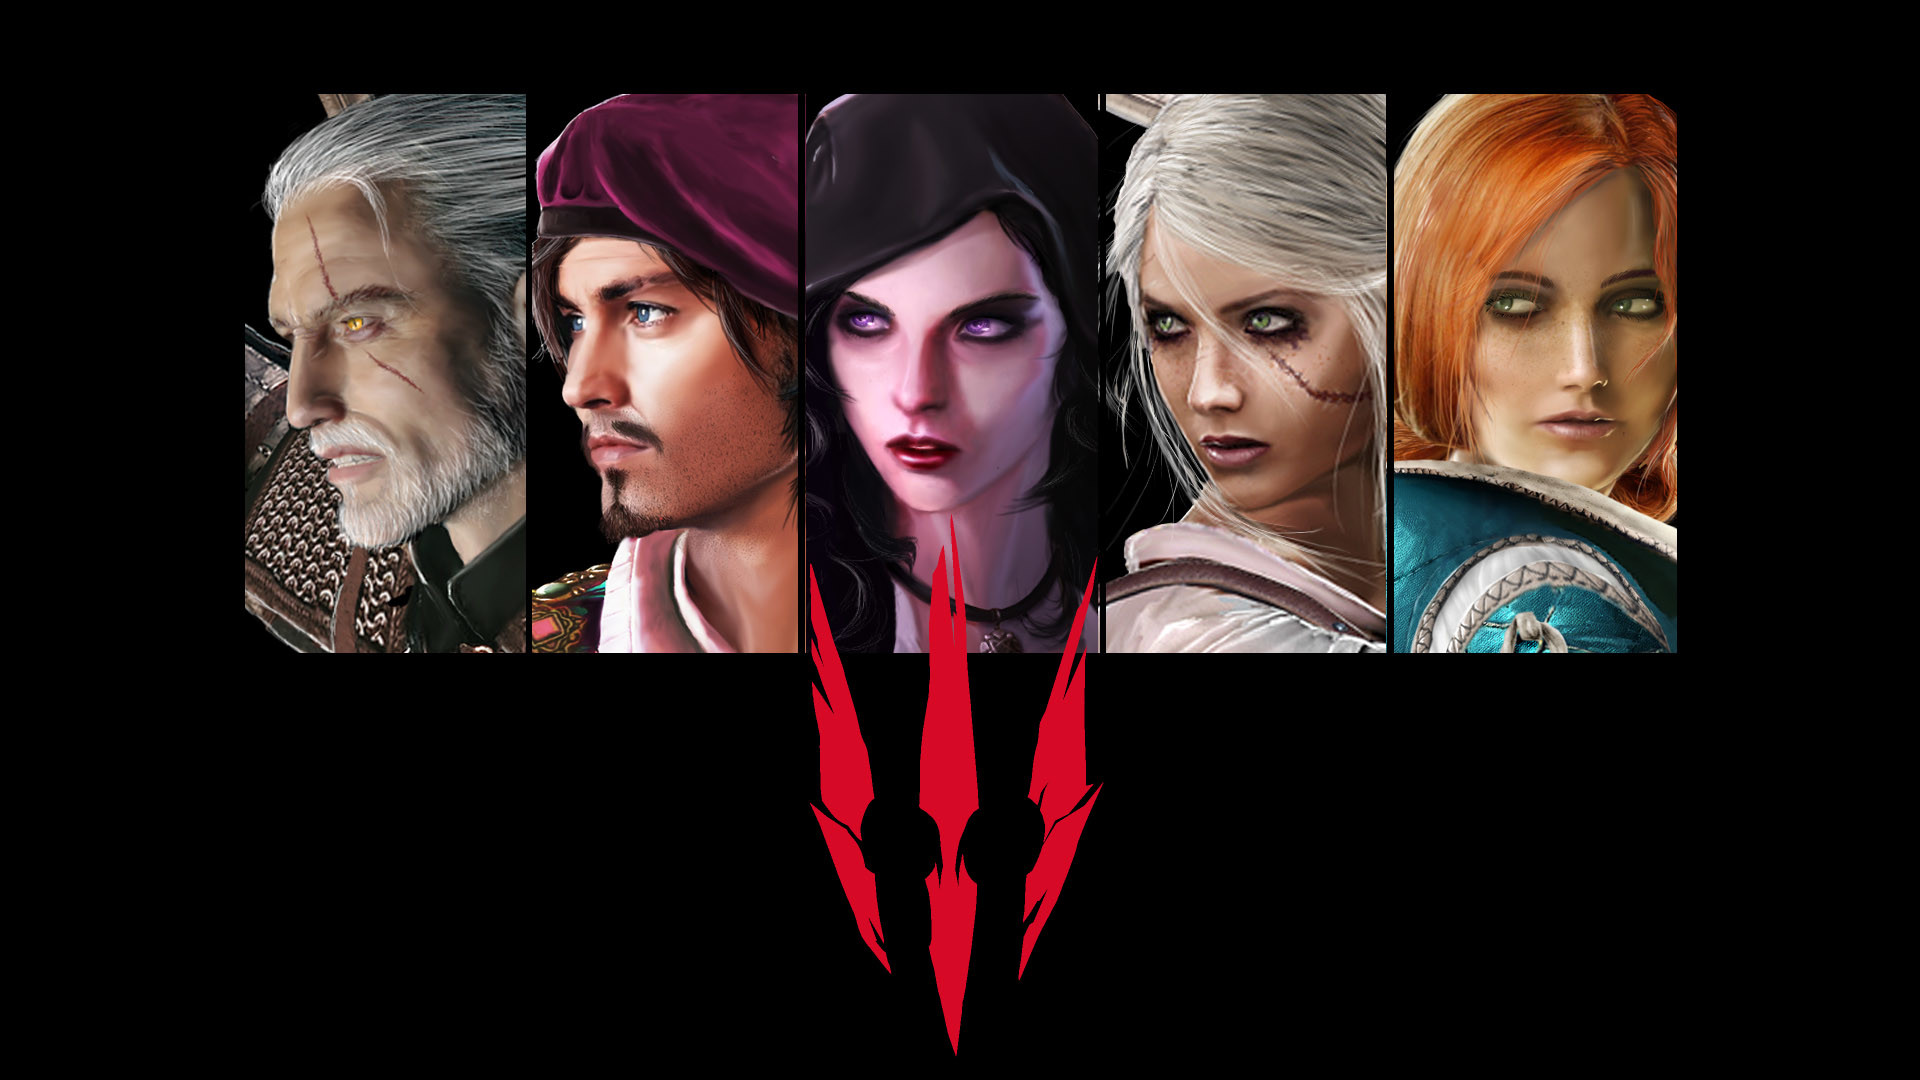 The Witcher 3Interesting HD fanmade Wallpaper.